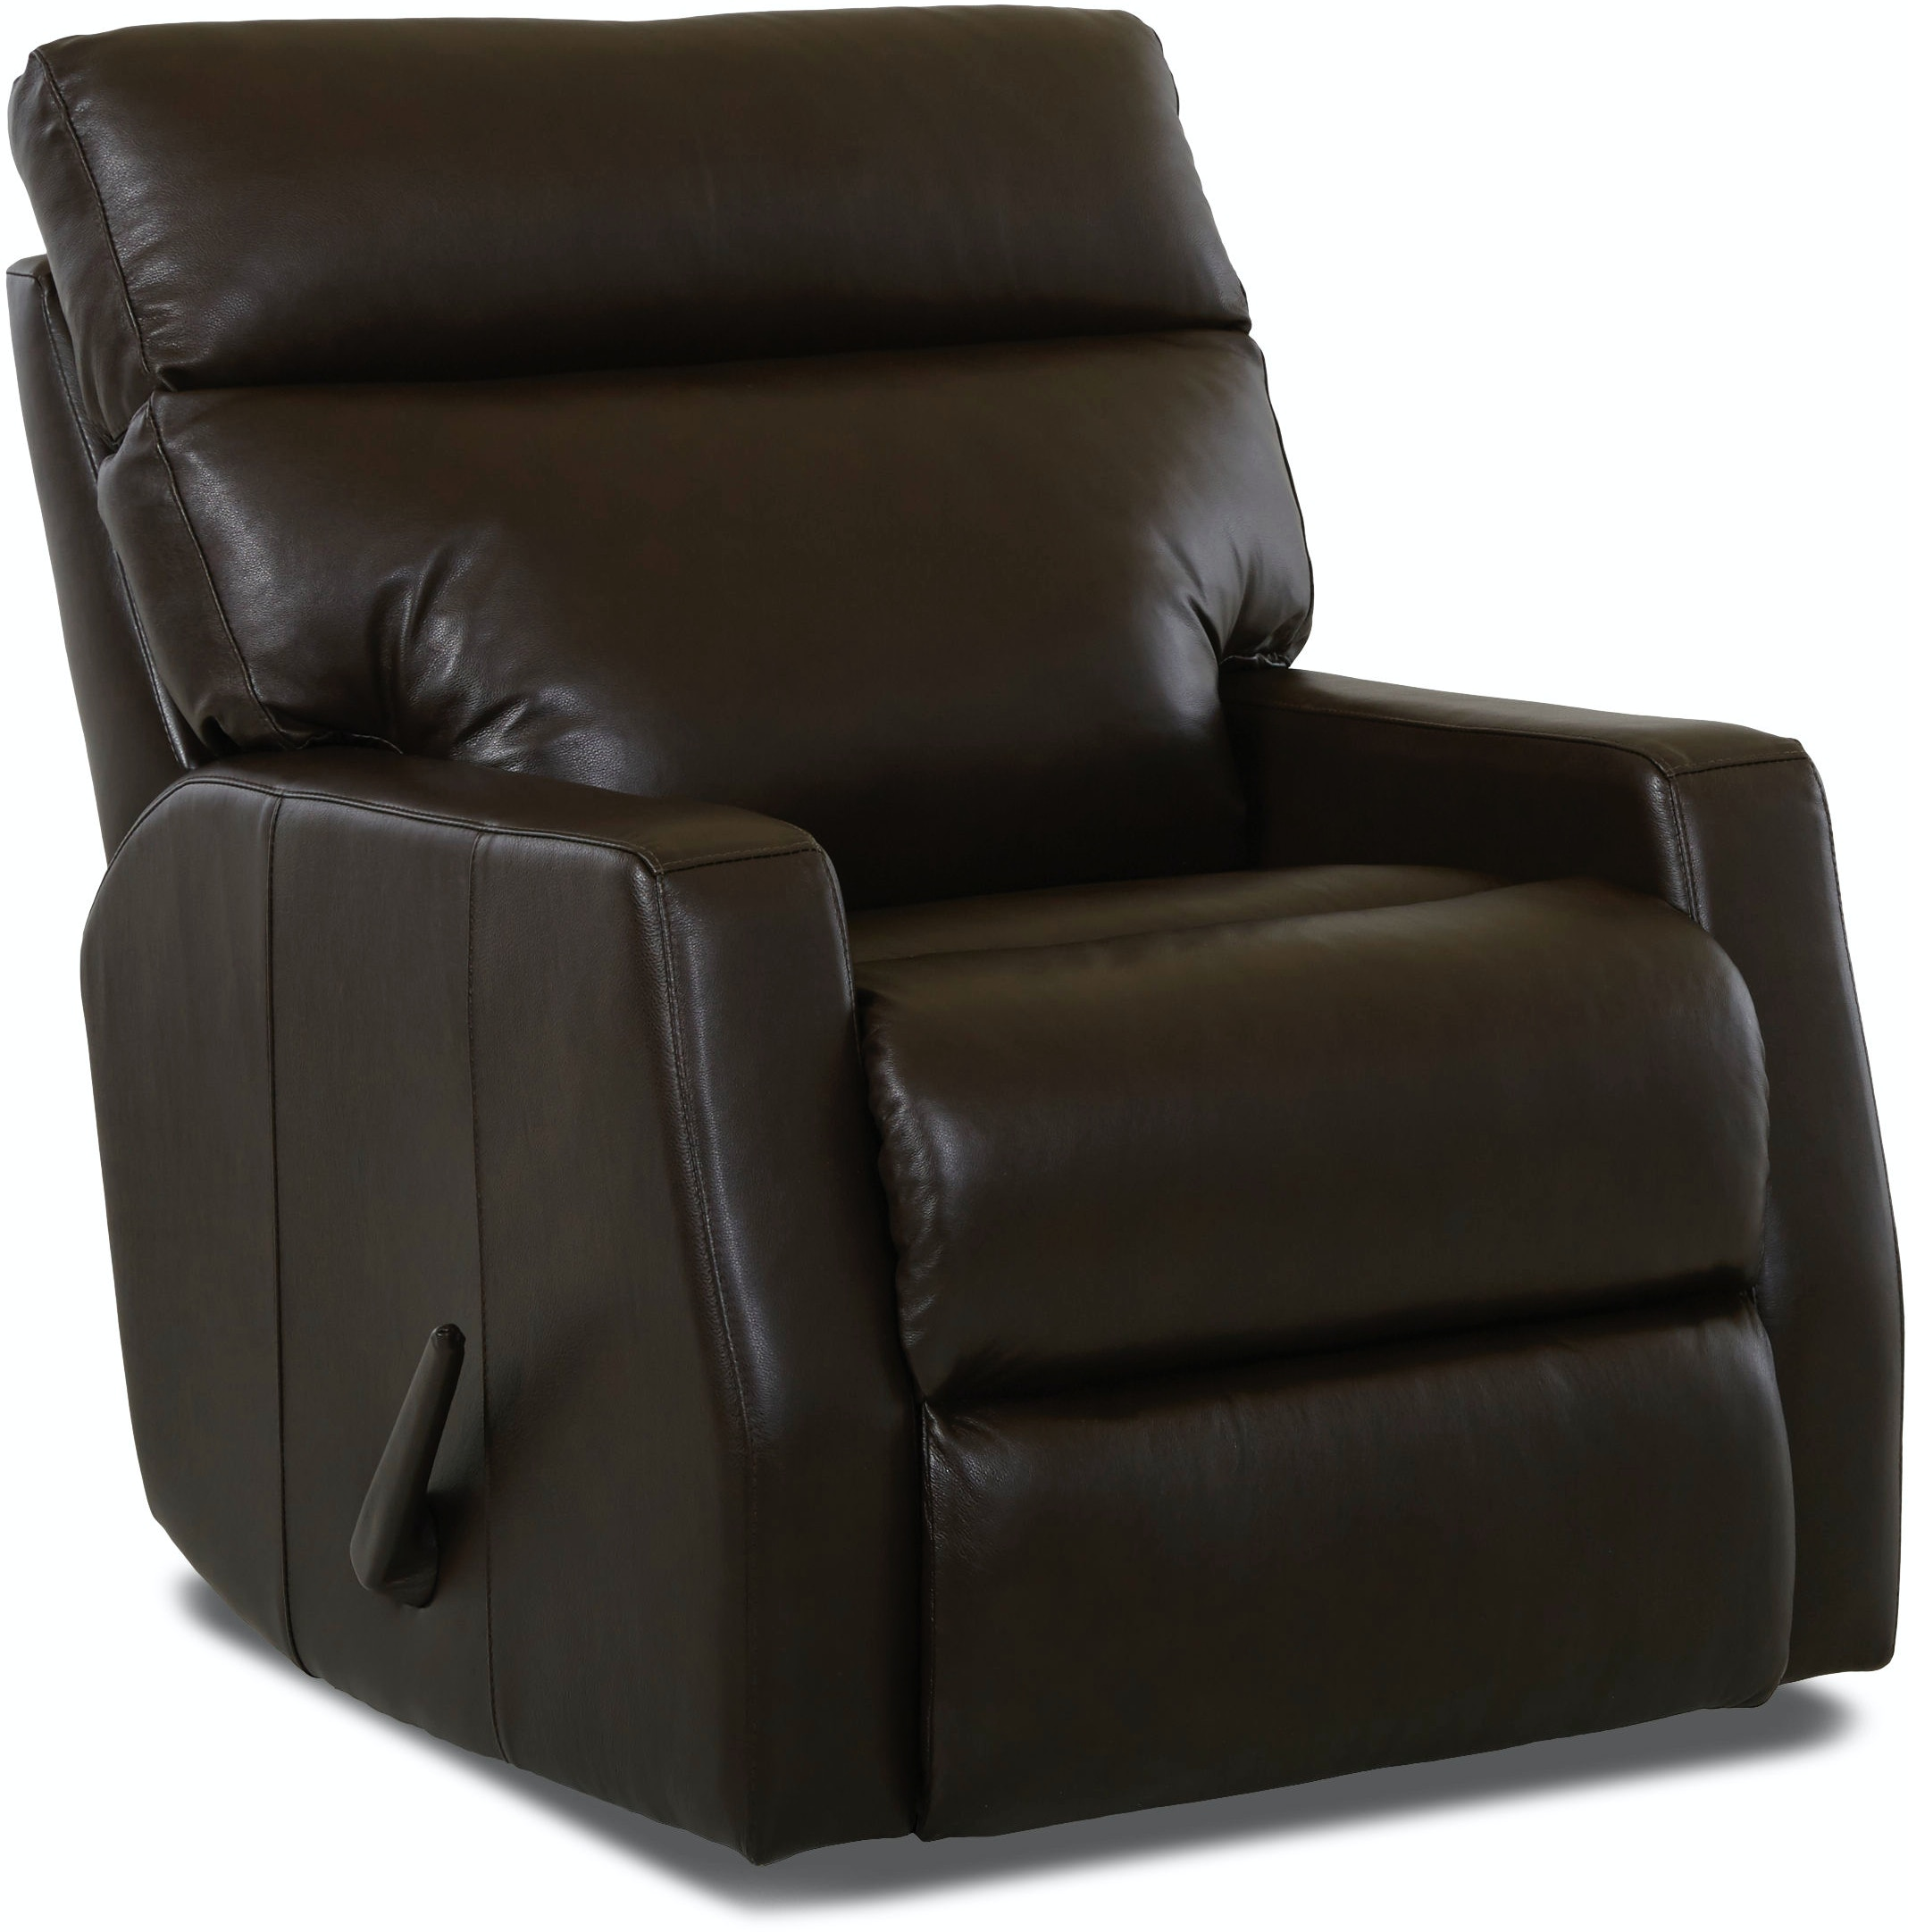 Comfort chairs living room